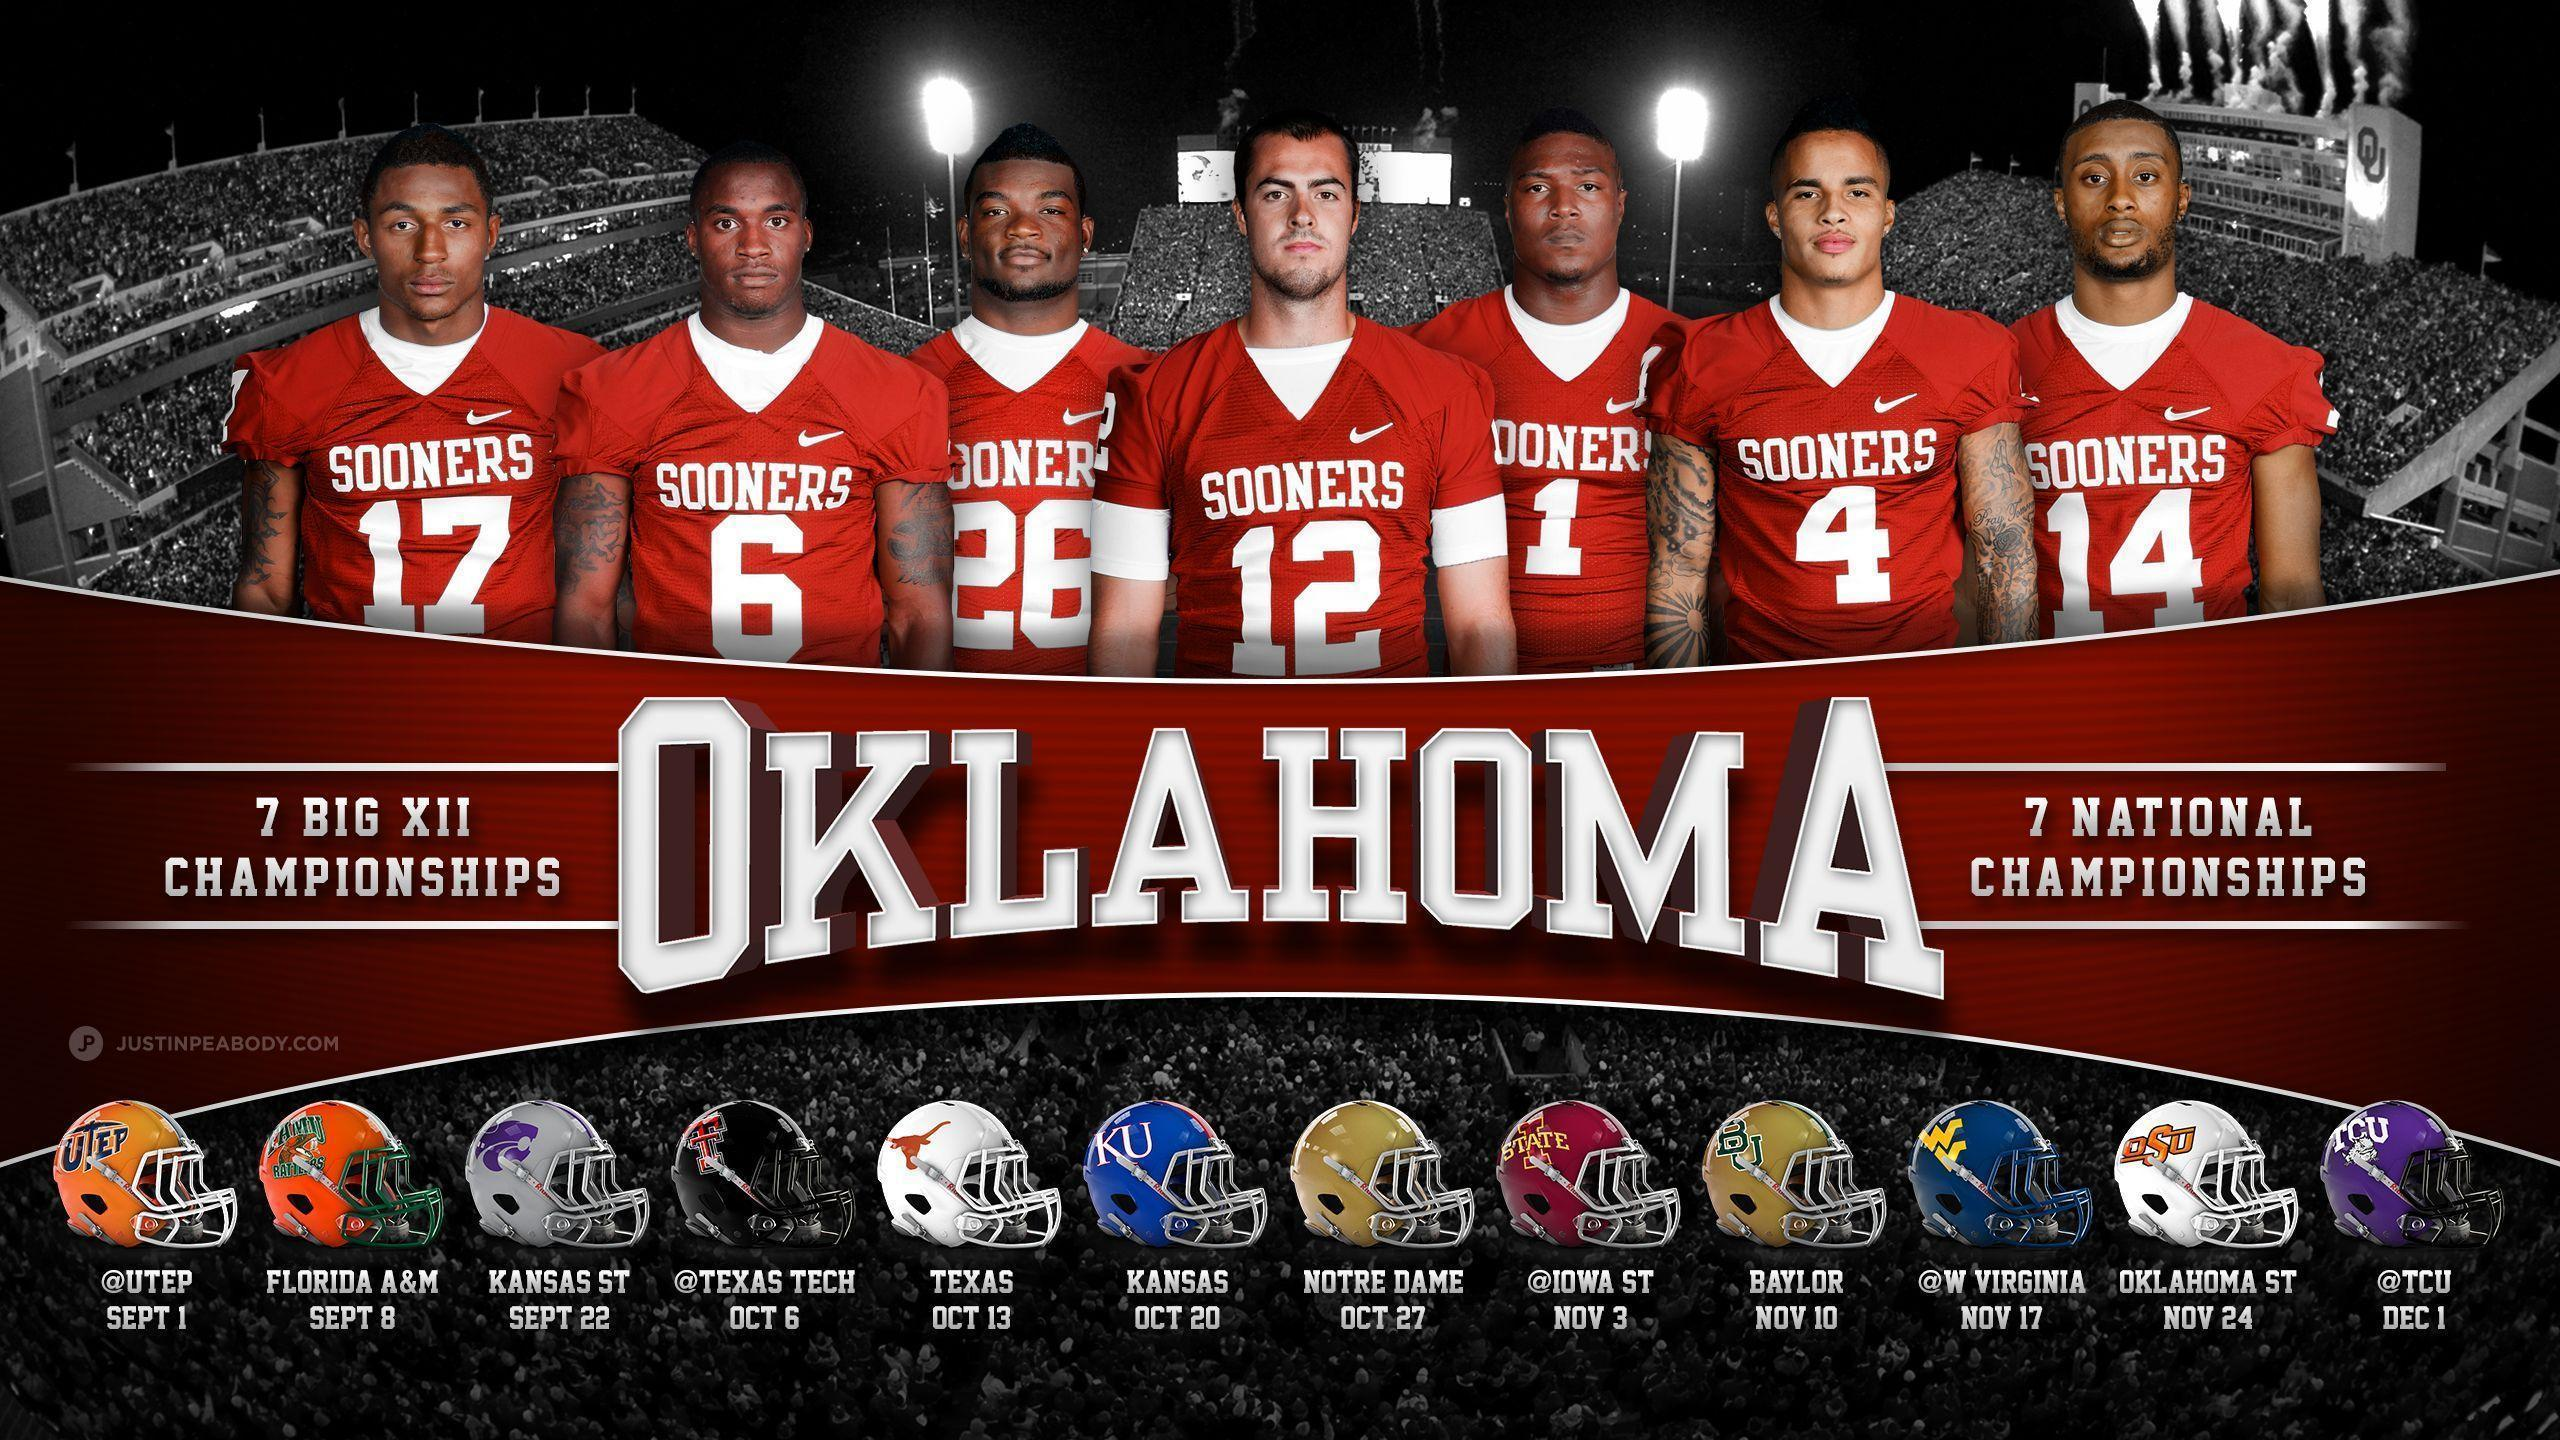 2016 Oklahoma University Football Schedule Wallpapers 2560x1440